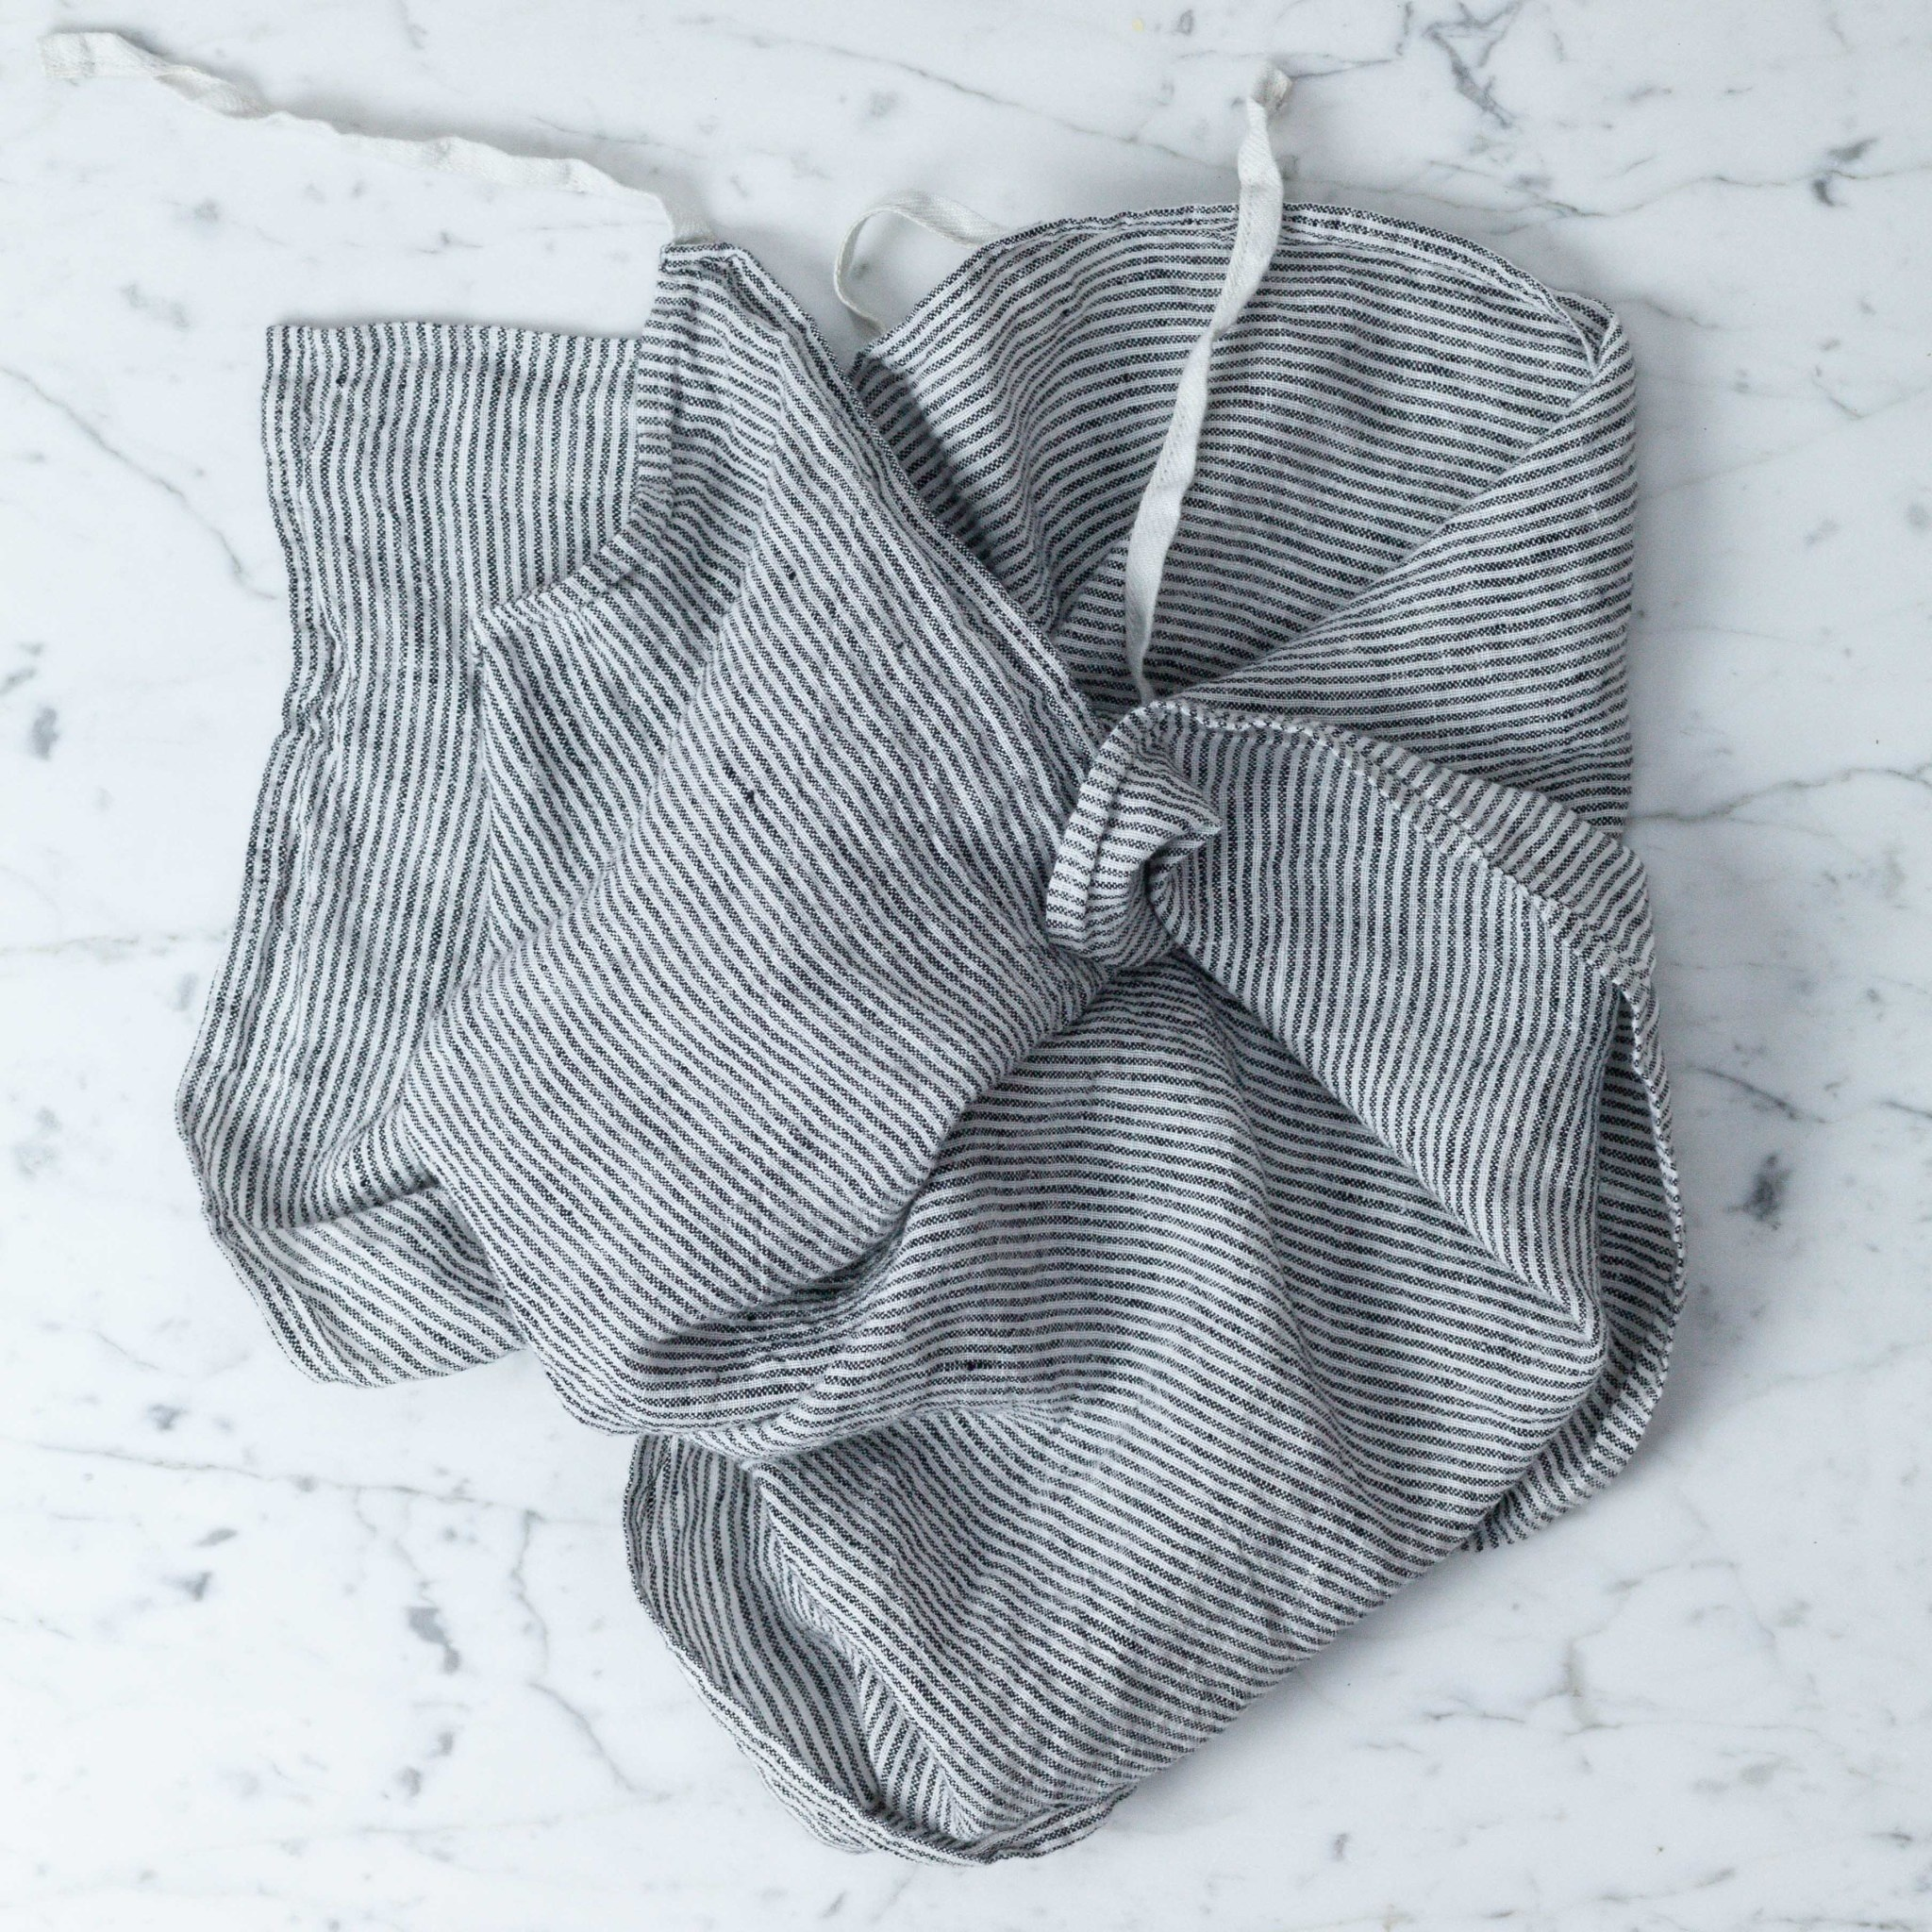 Washed French Linen Dish or Hand Towel with Hidden Apron Strings - Black + White Stripe- 22 x 30""